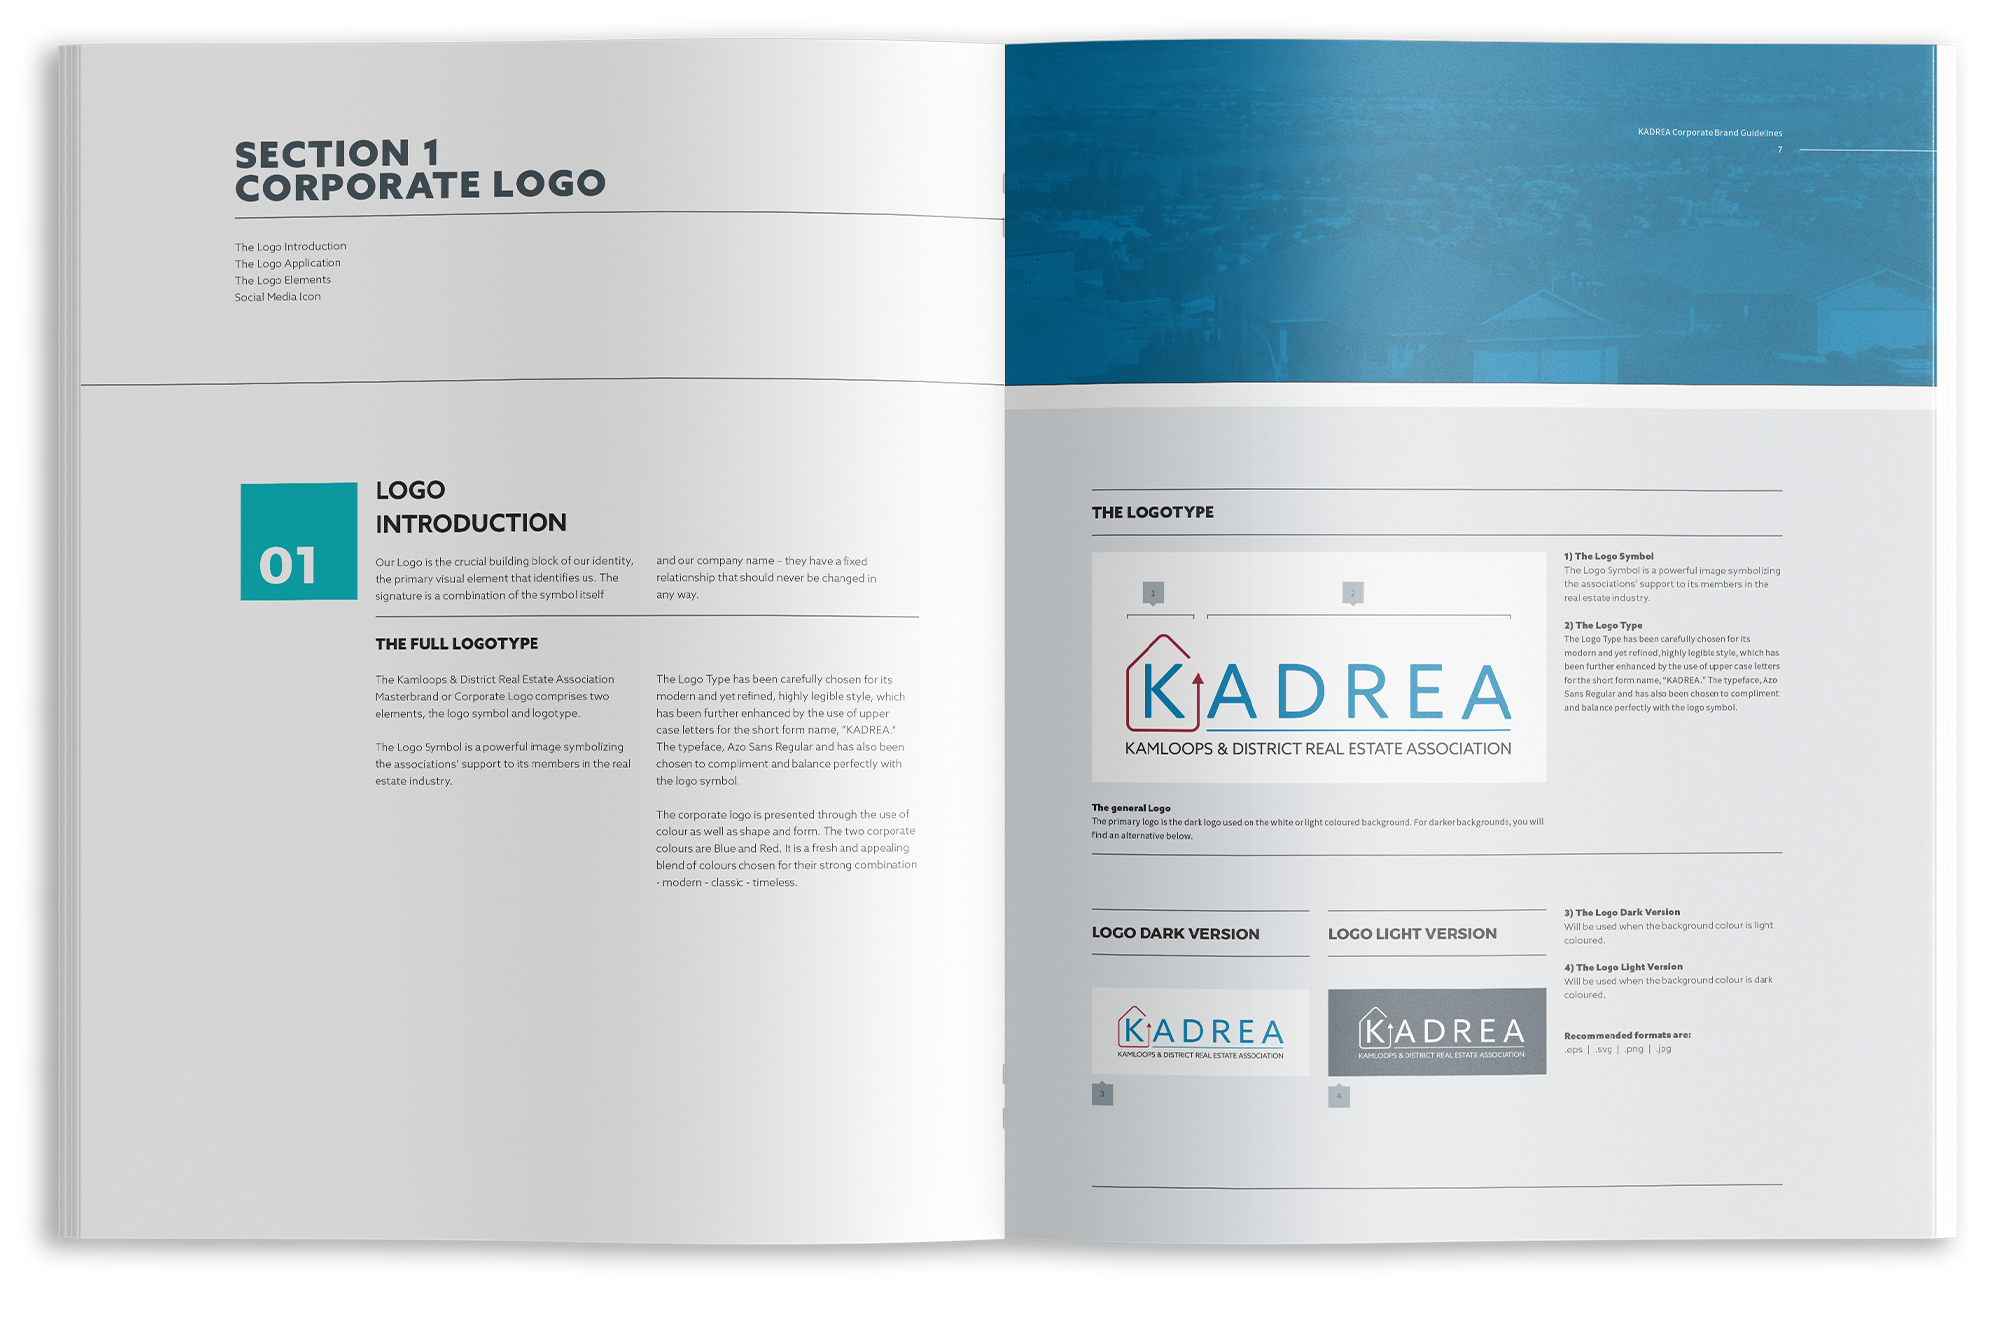 Inside spread of KADREA's brand guidelines.